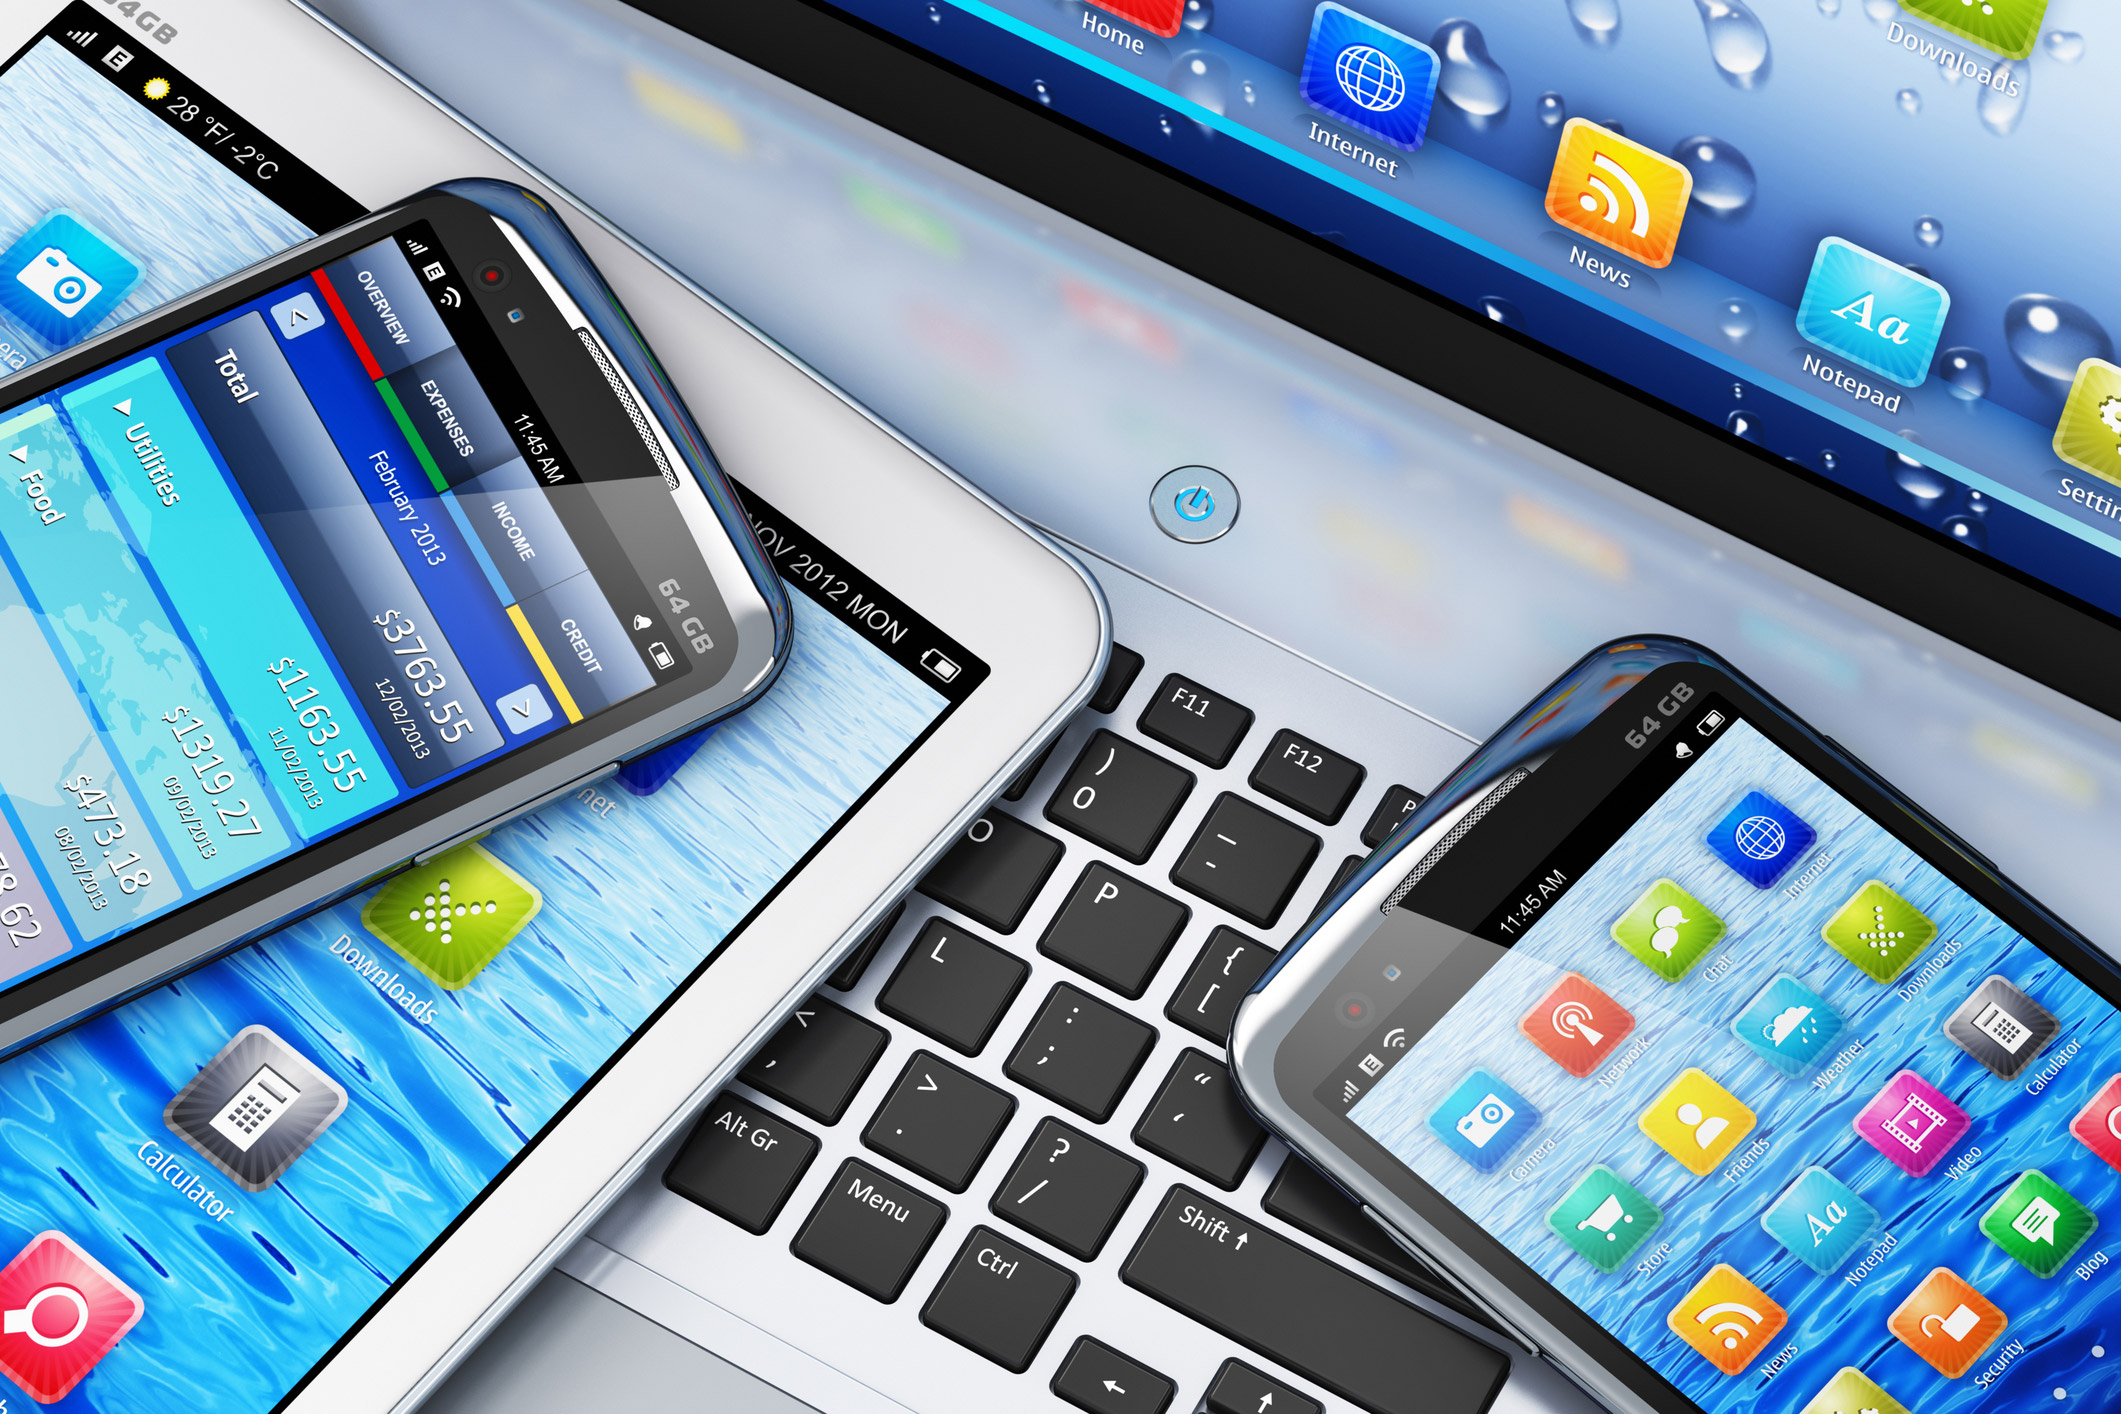 Mobile-digital-devices-on-laptop